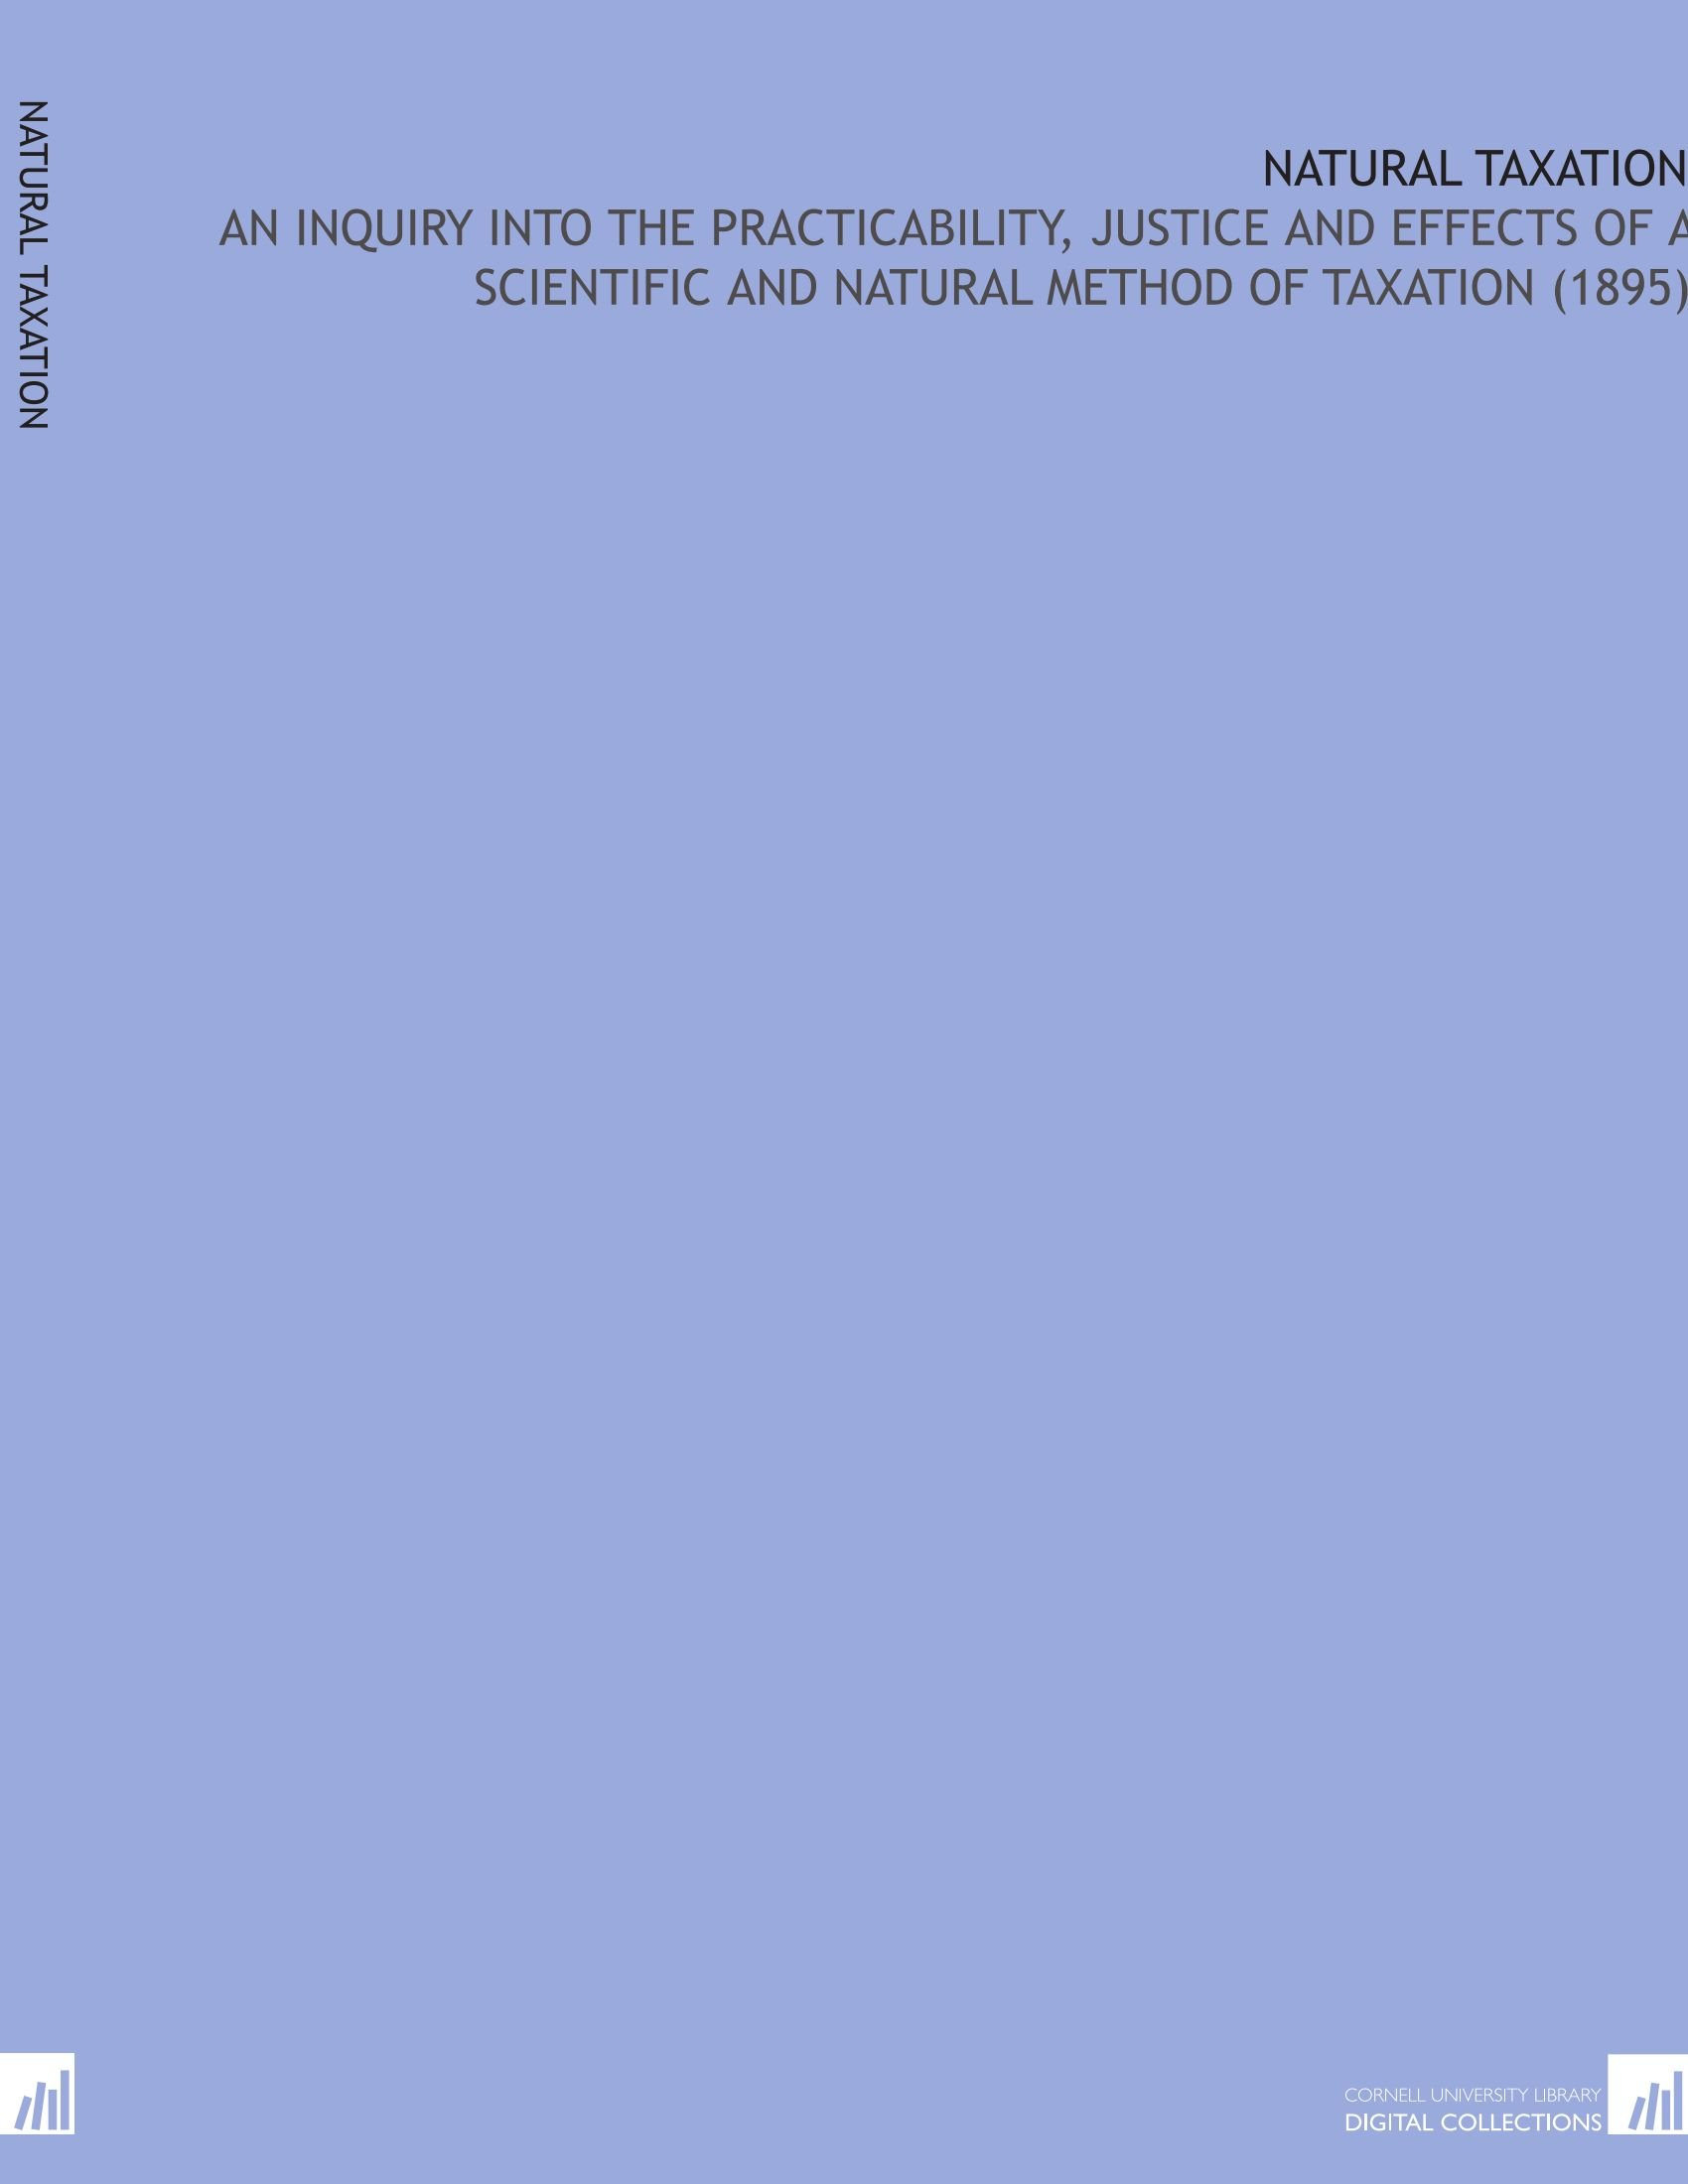 Read Online Natural Taxation: An Inquiry Into the Practicability, Justice and Effects of a Scientific and Natural Method of Taxation (1895) PDF